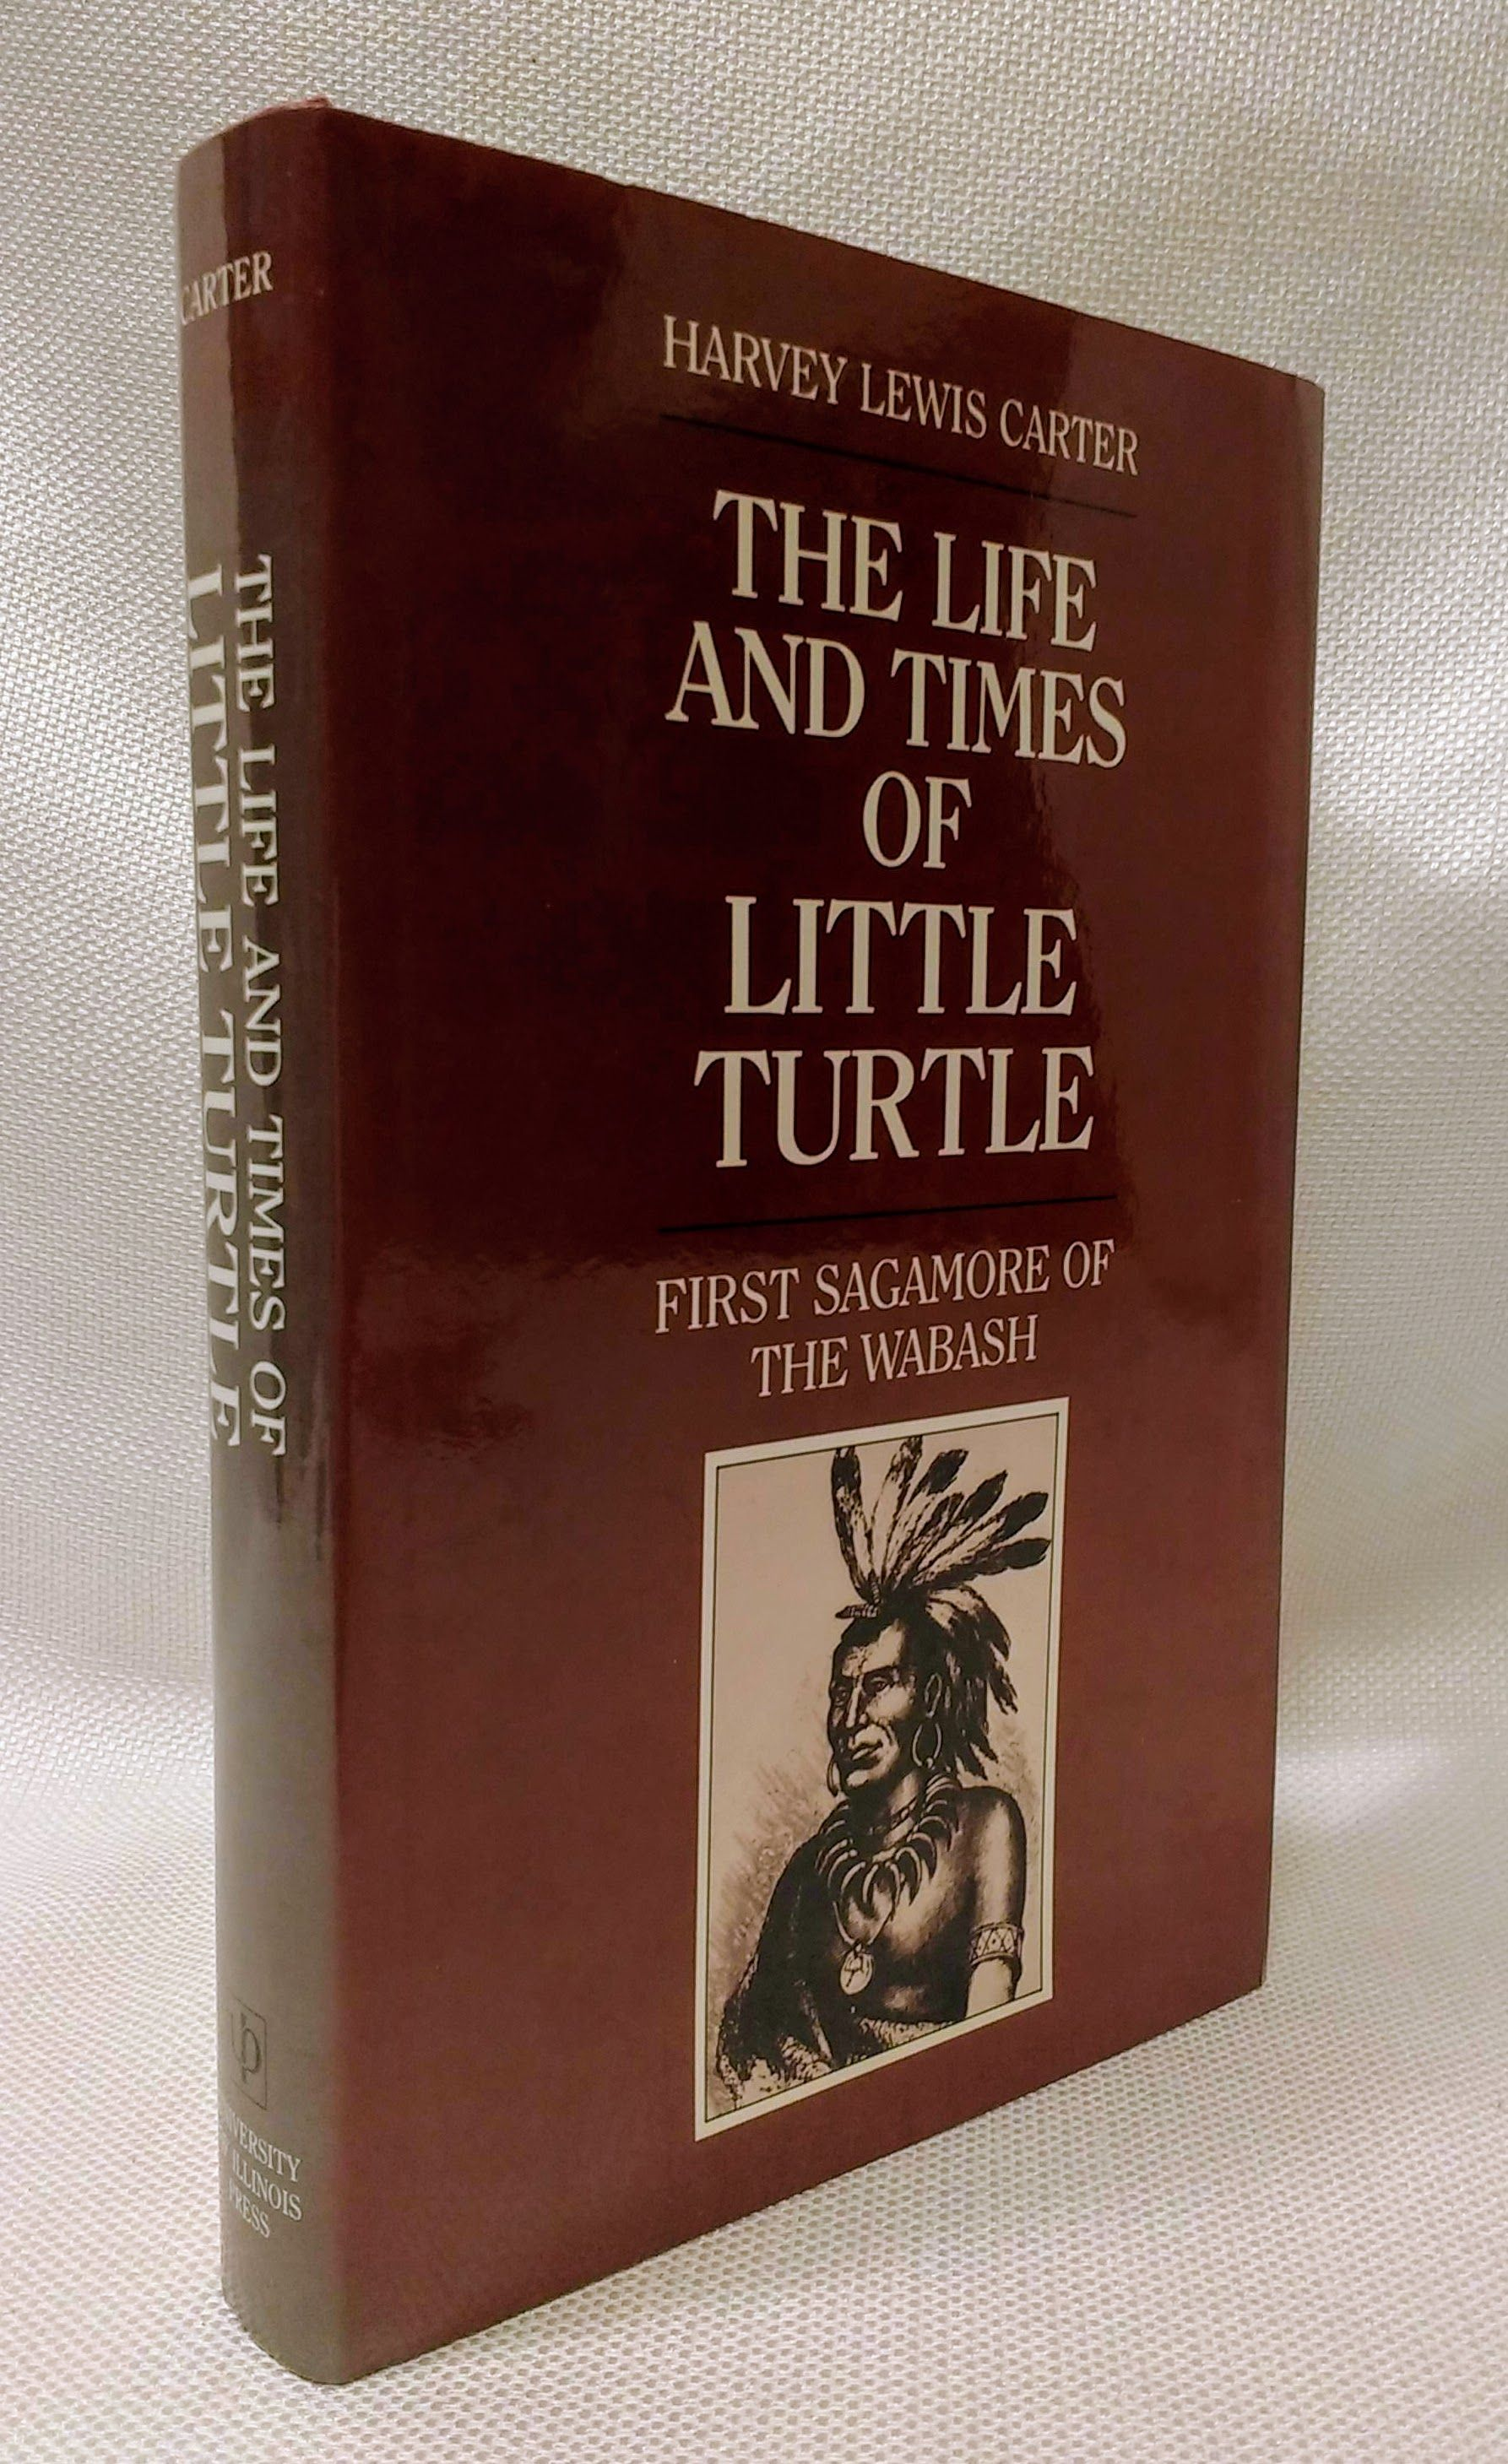 The life and times of Little Turtle: First Sagamore of the Wabash, Harvey Lewis Carter